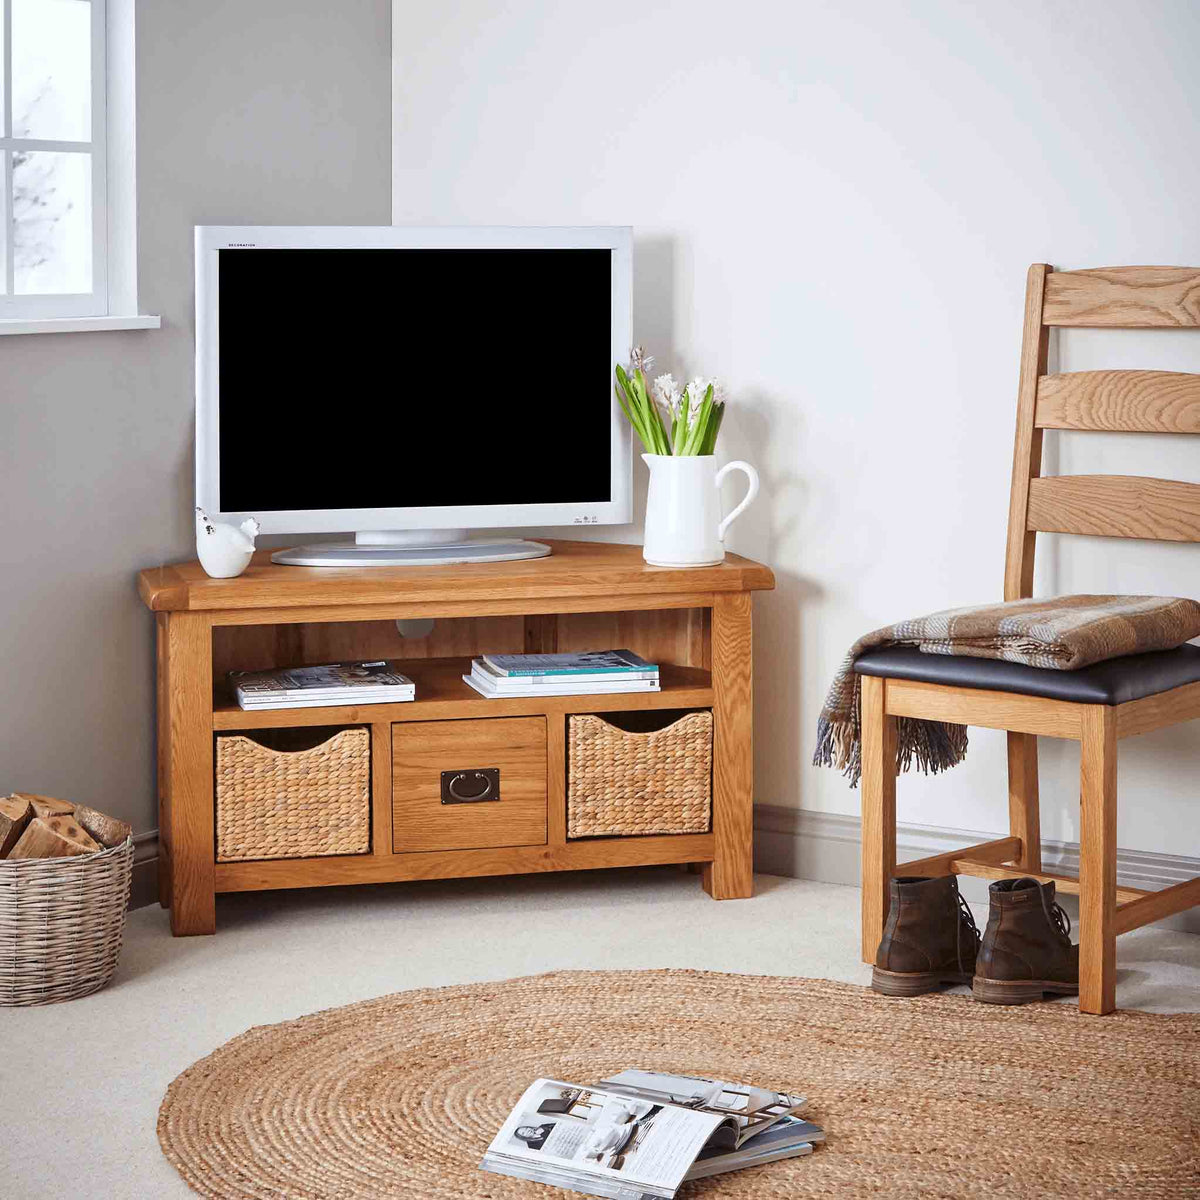 Zelah Oak Corner TV Stand with Baskets